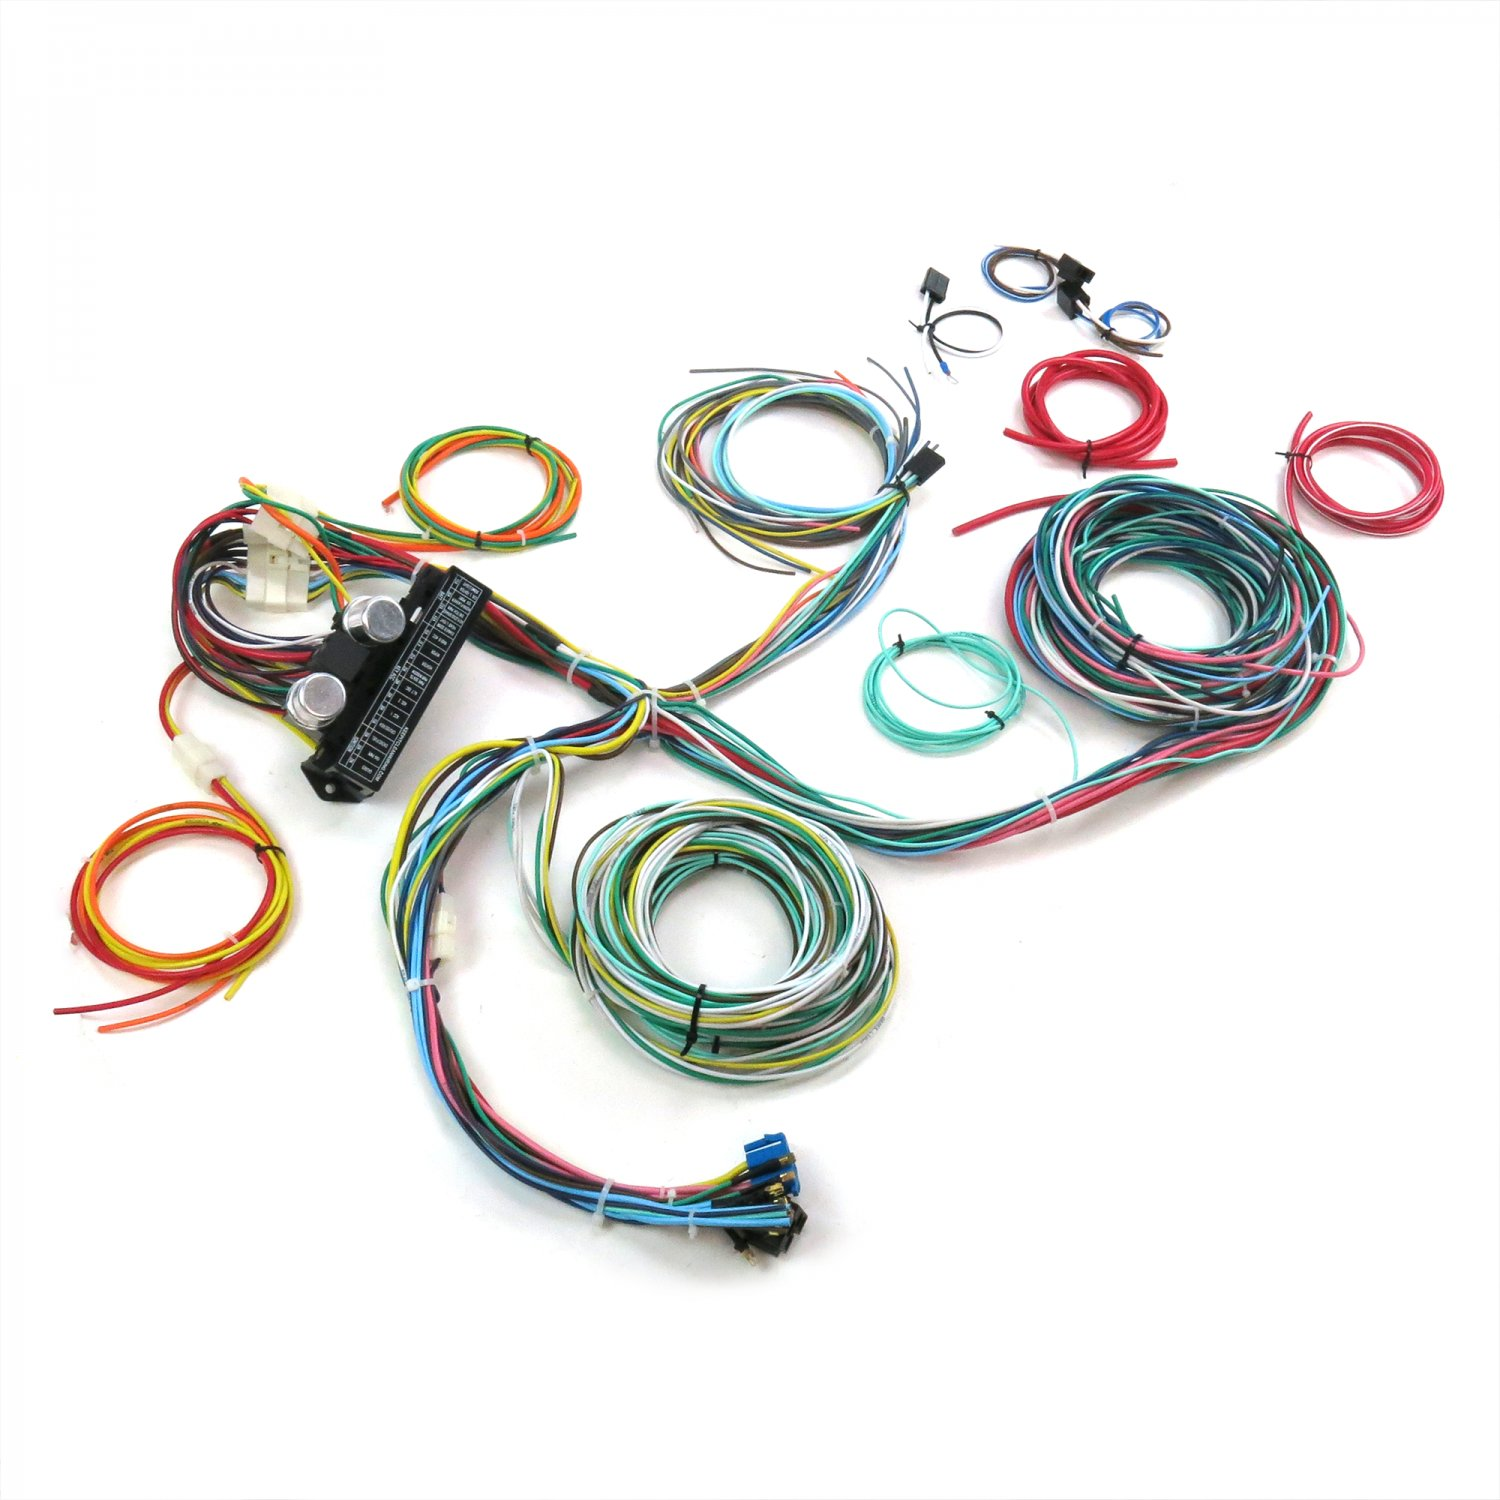 auto wire harness re wiring kit for any 67 72 chevy truck 12v american  standard ebay vehicle wiring harness kit car audio wiring harness kits